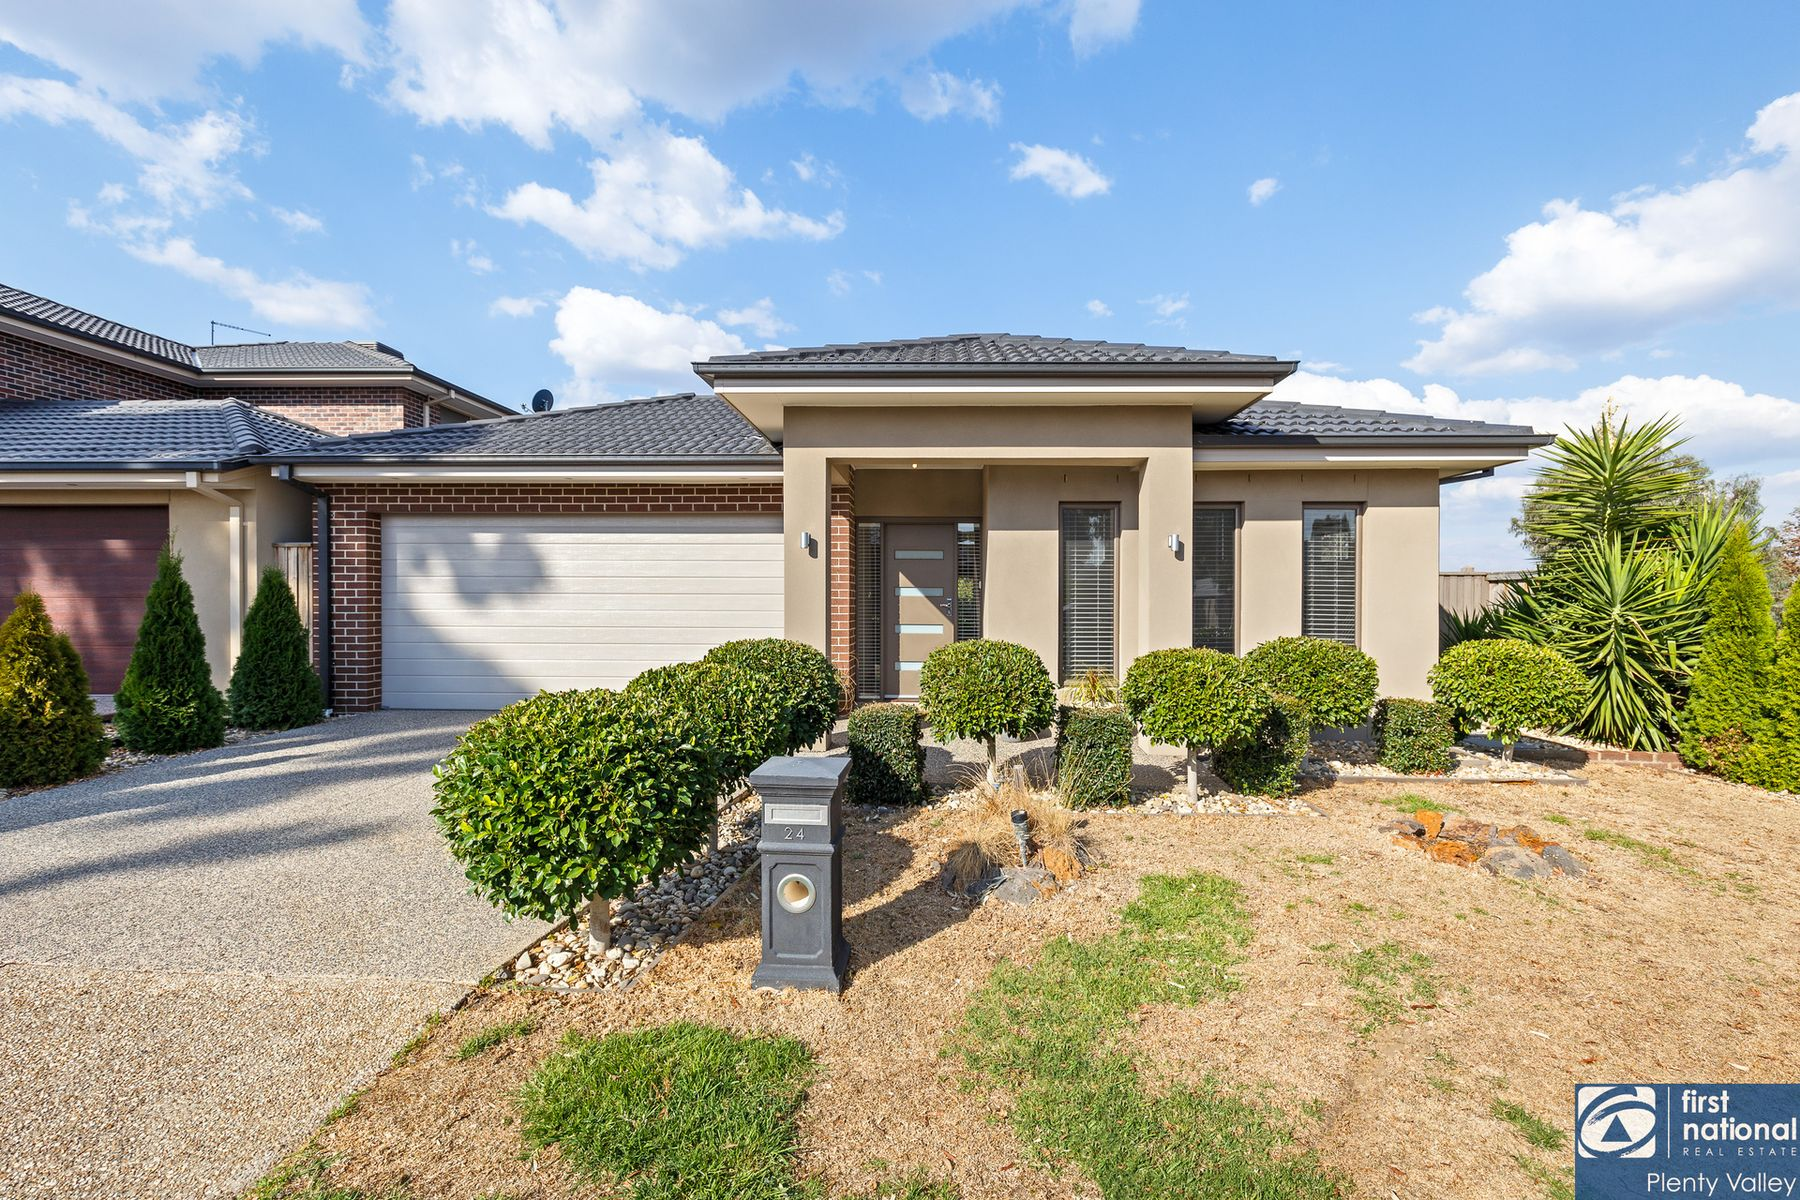 24 pietas pl mernda vic 3754 australia house for sale first rh firstnational com au